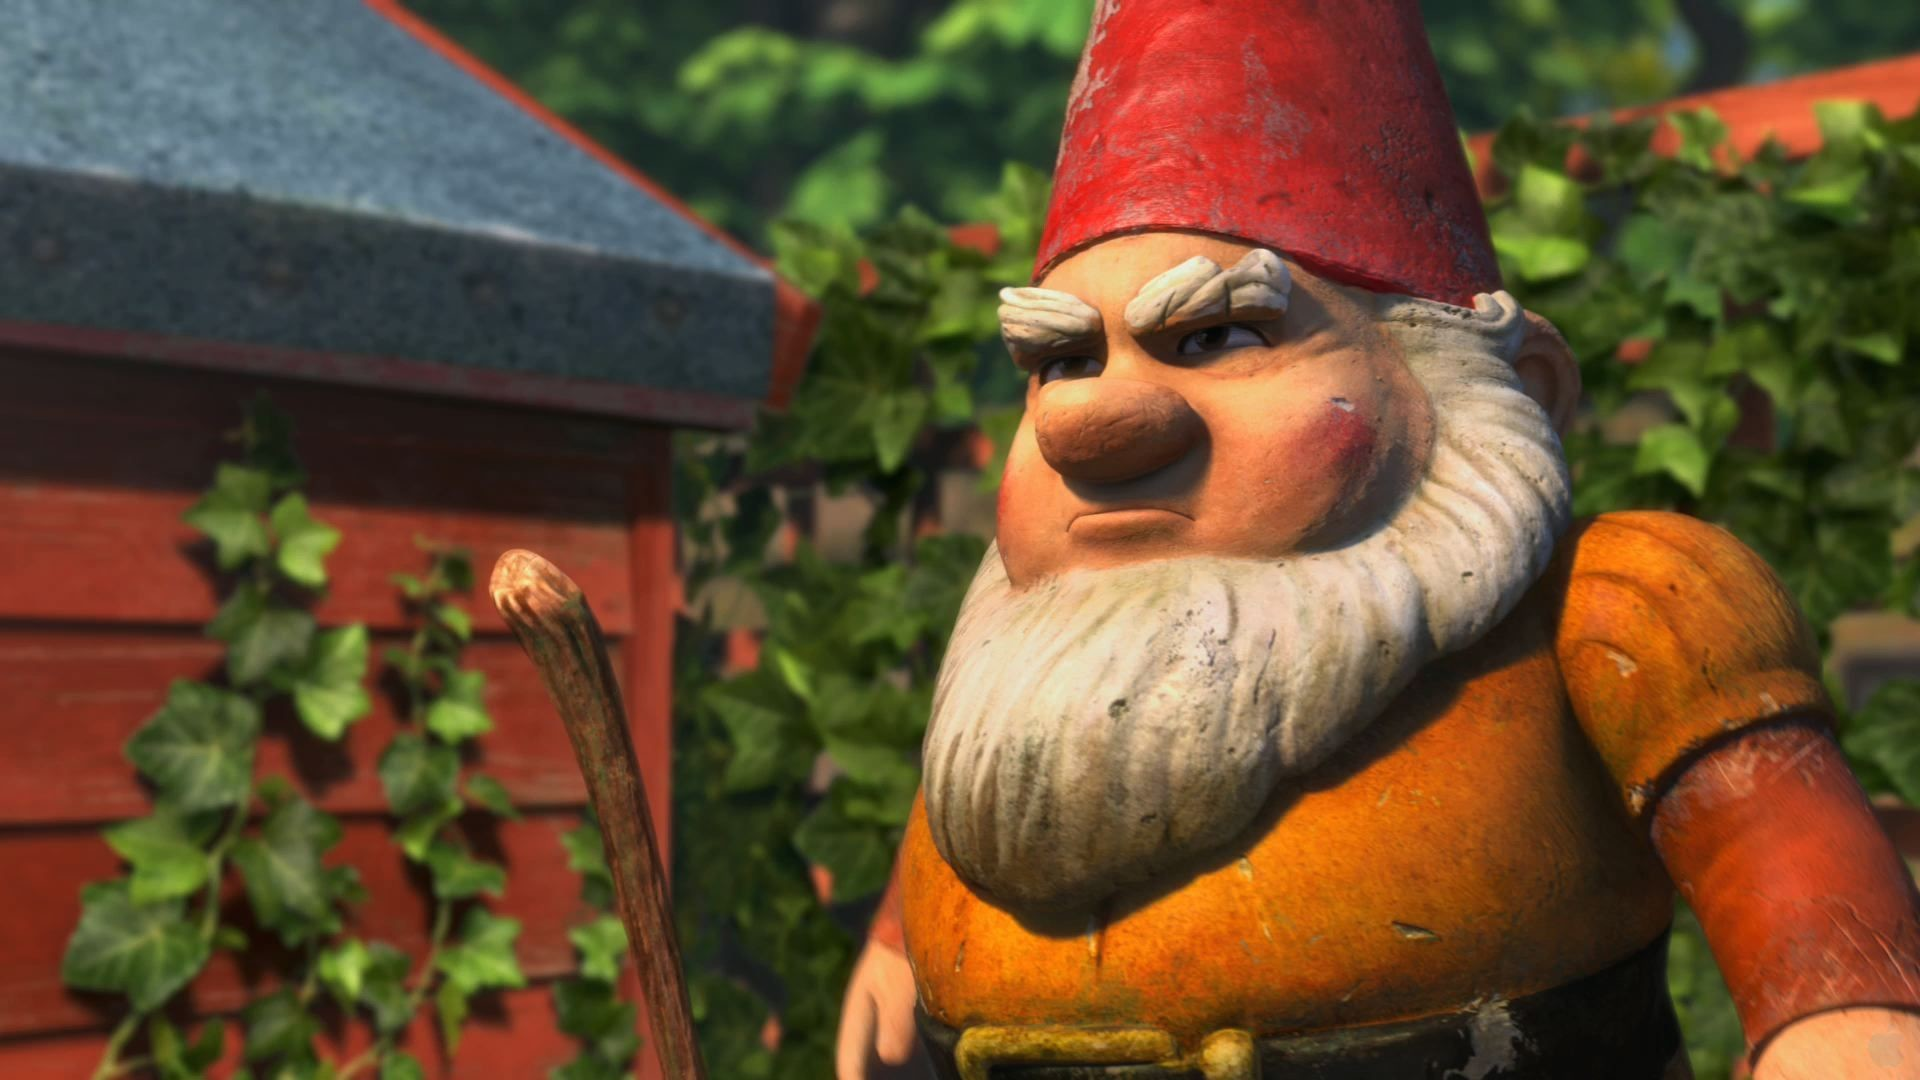 Res: 1920x1080, gnomeo and juliet wallpaper | Lord Redbrick from Gnomeo and Juliet wallpaper  - Click picture for .